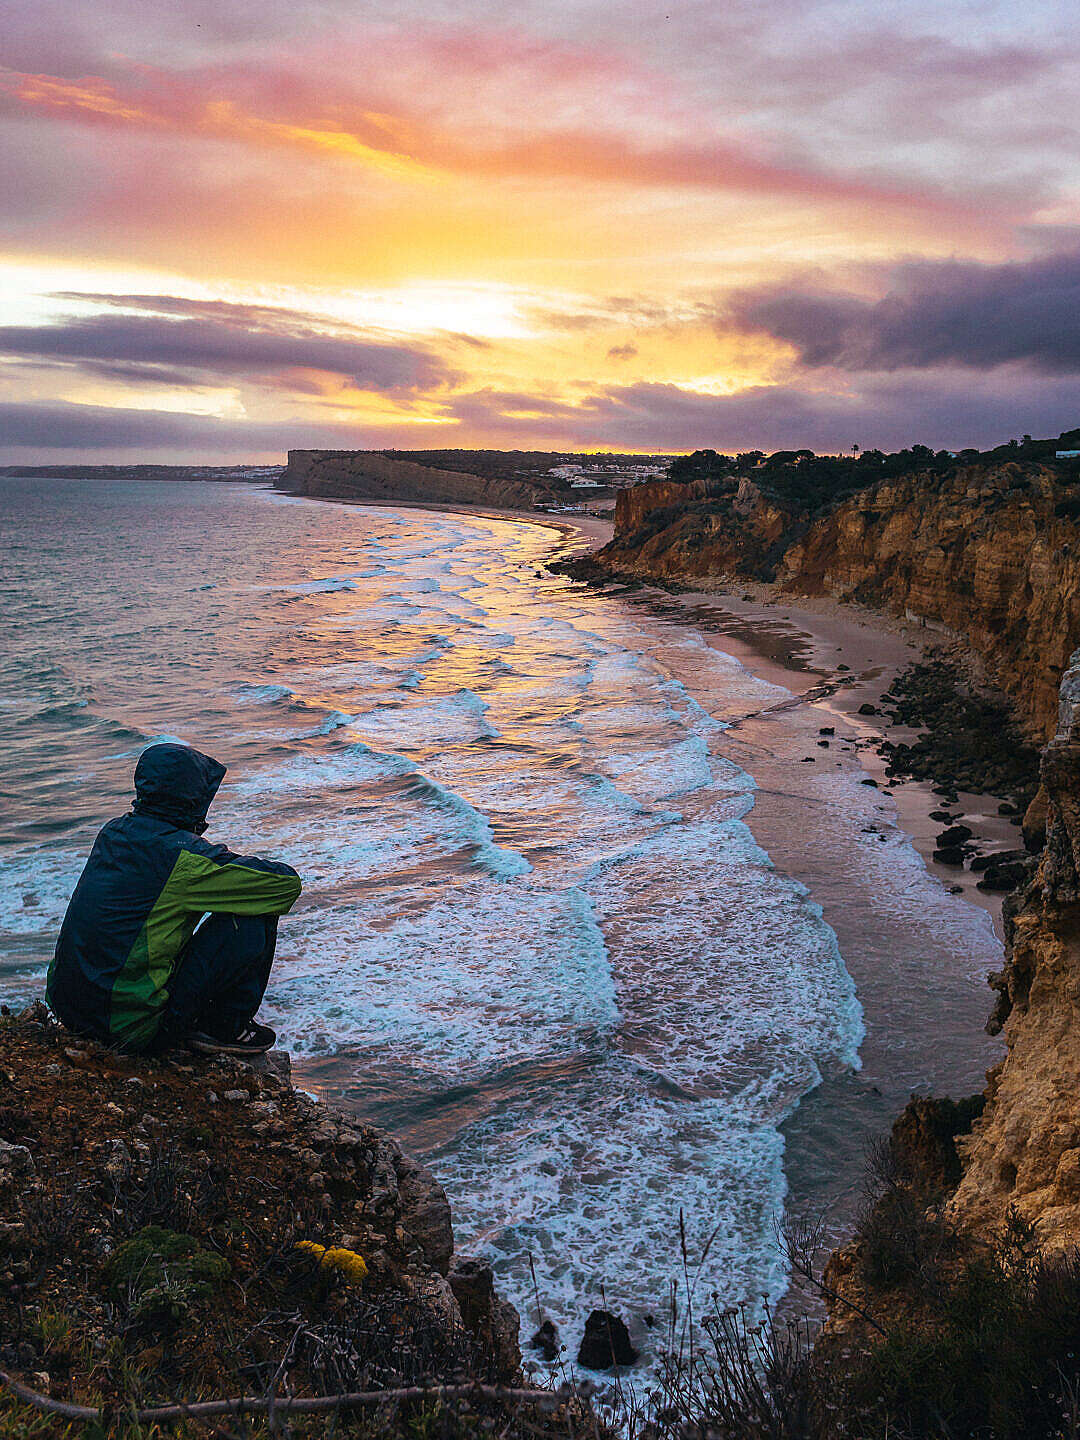 Download Man Enjoying Cloudy Sunset by Portugal Coastline FREE Stock Photo